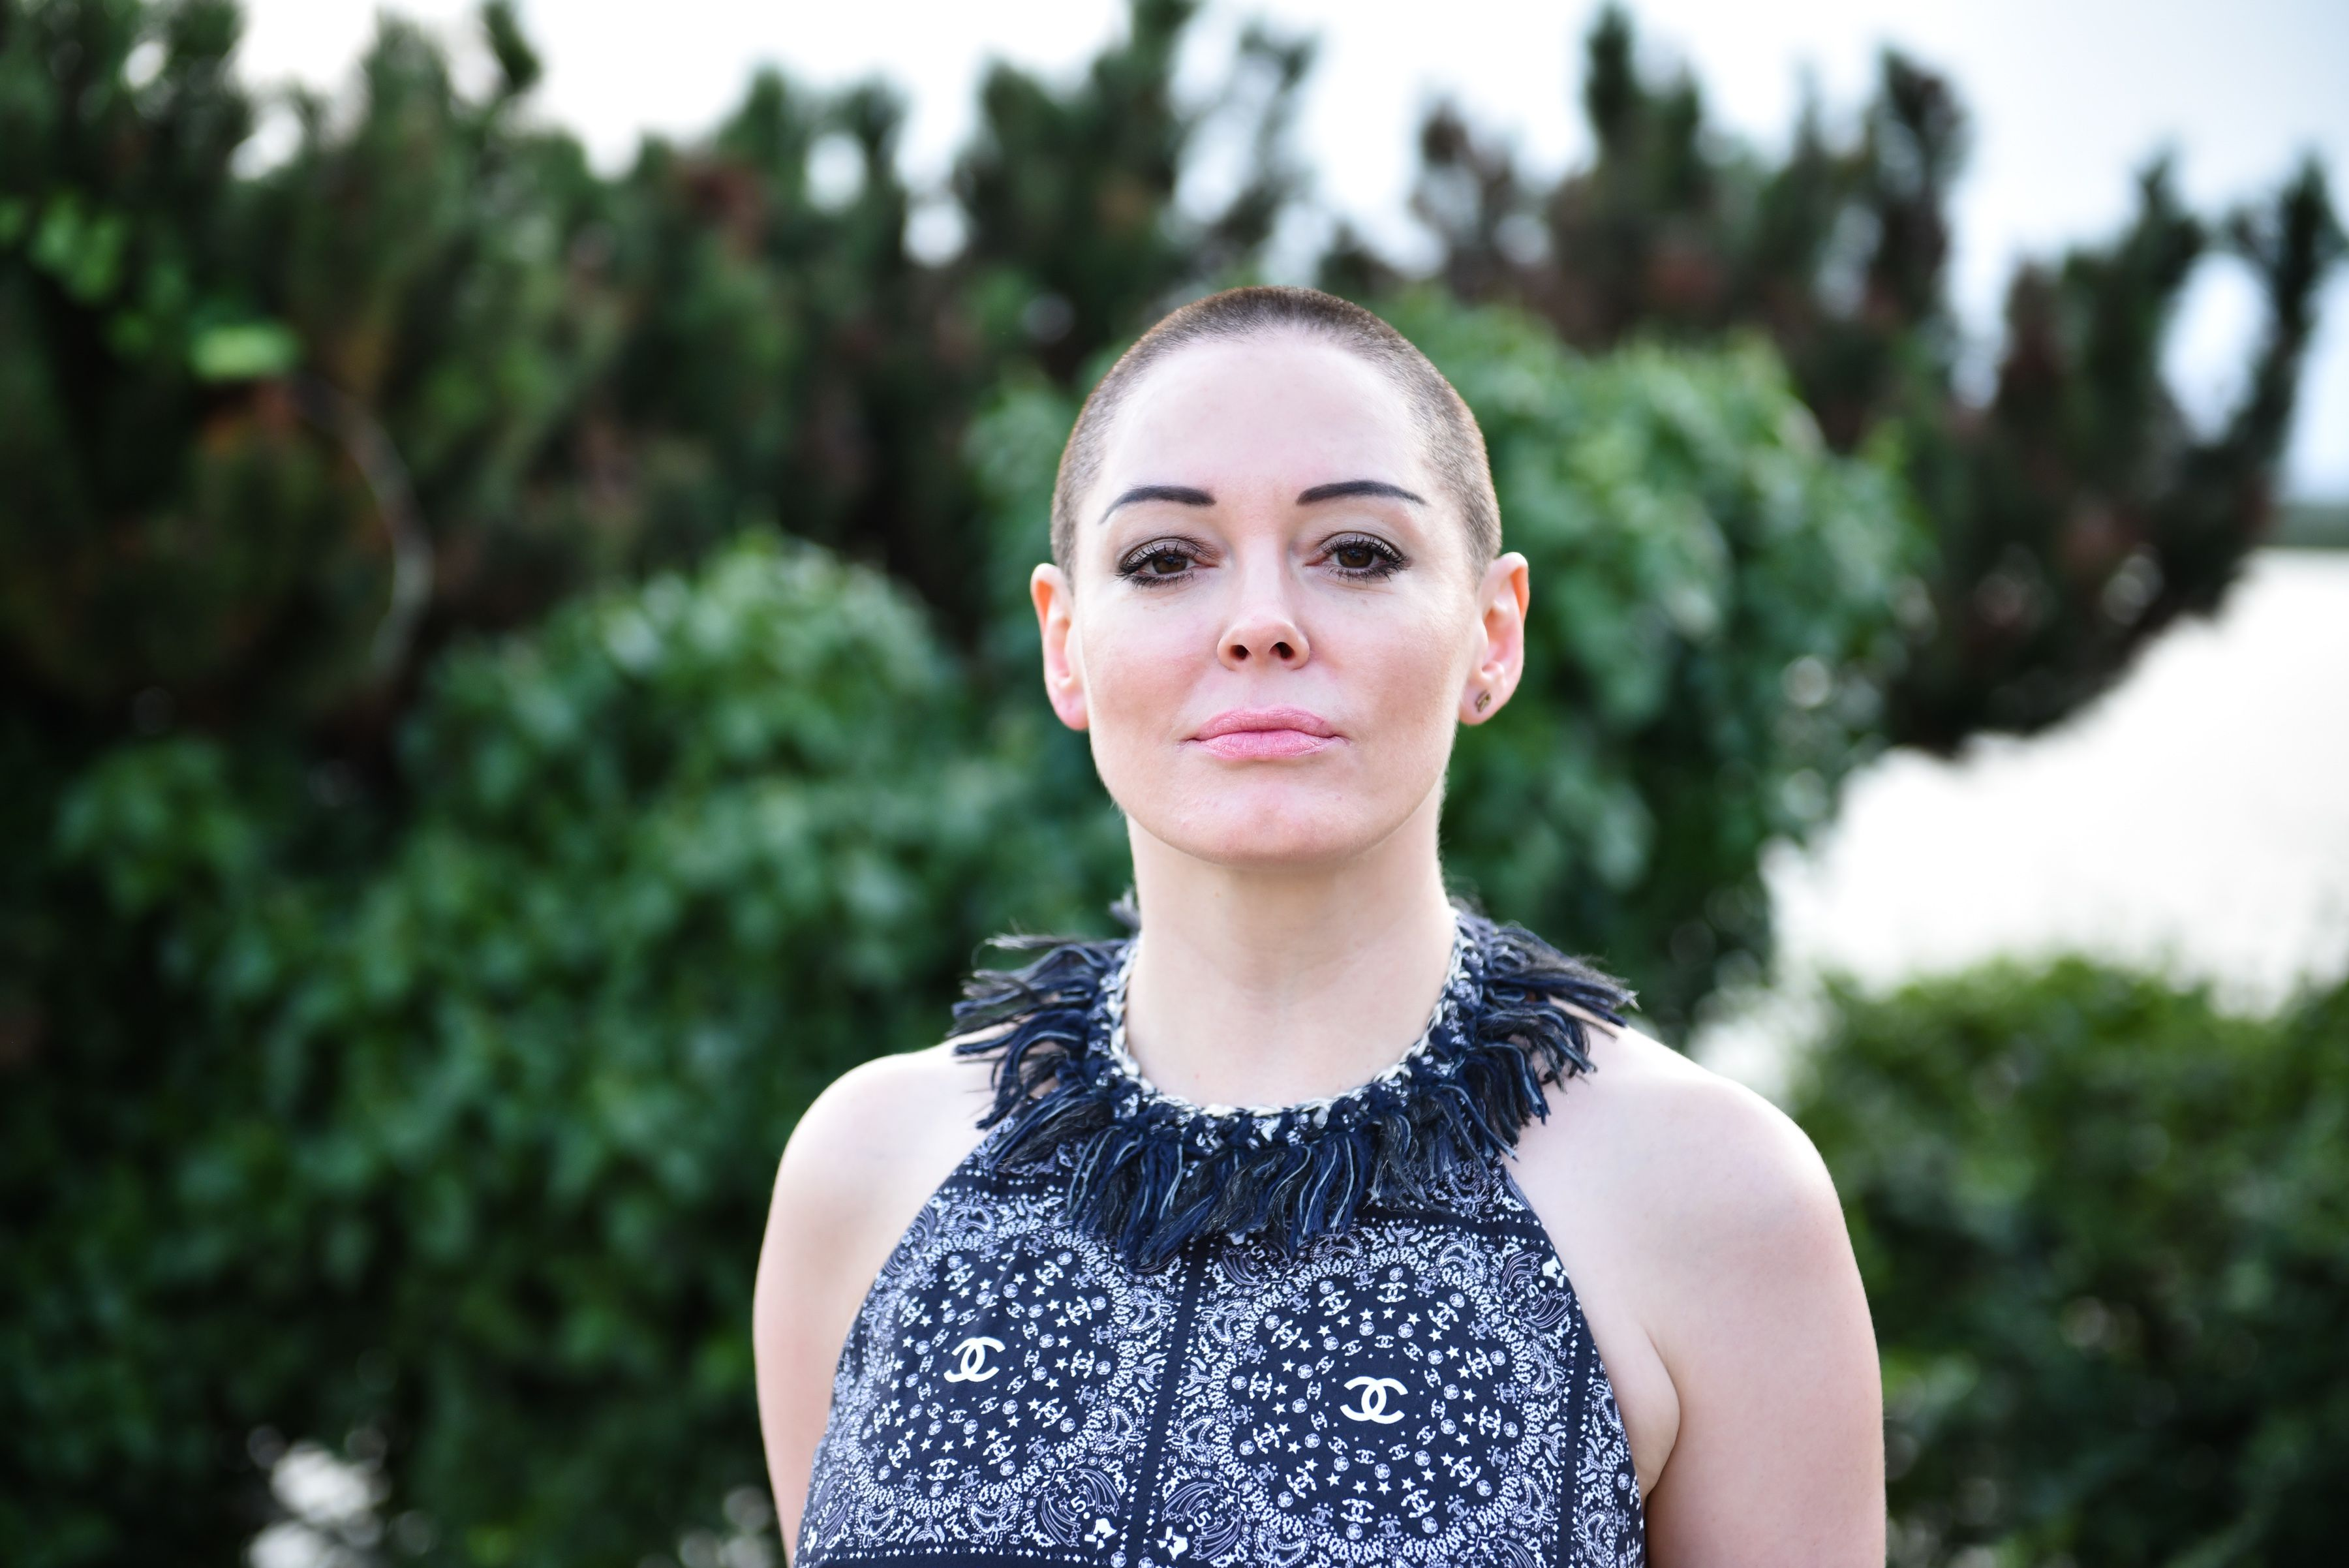 Rose McGowanThe Surf Lodge presents a movie premiere with Rose Mcgowan And Taylor Steele, The Surf Lodge, Montauk, USA - 23 Jul 2017